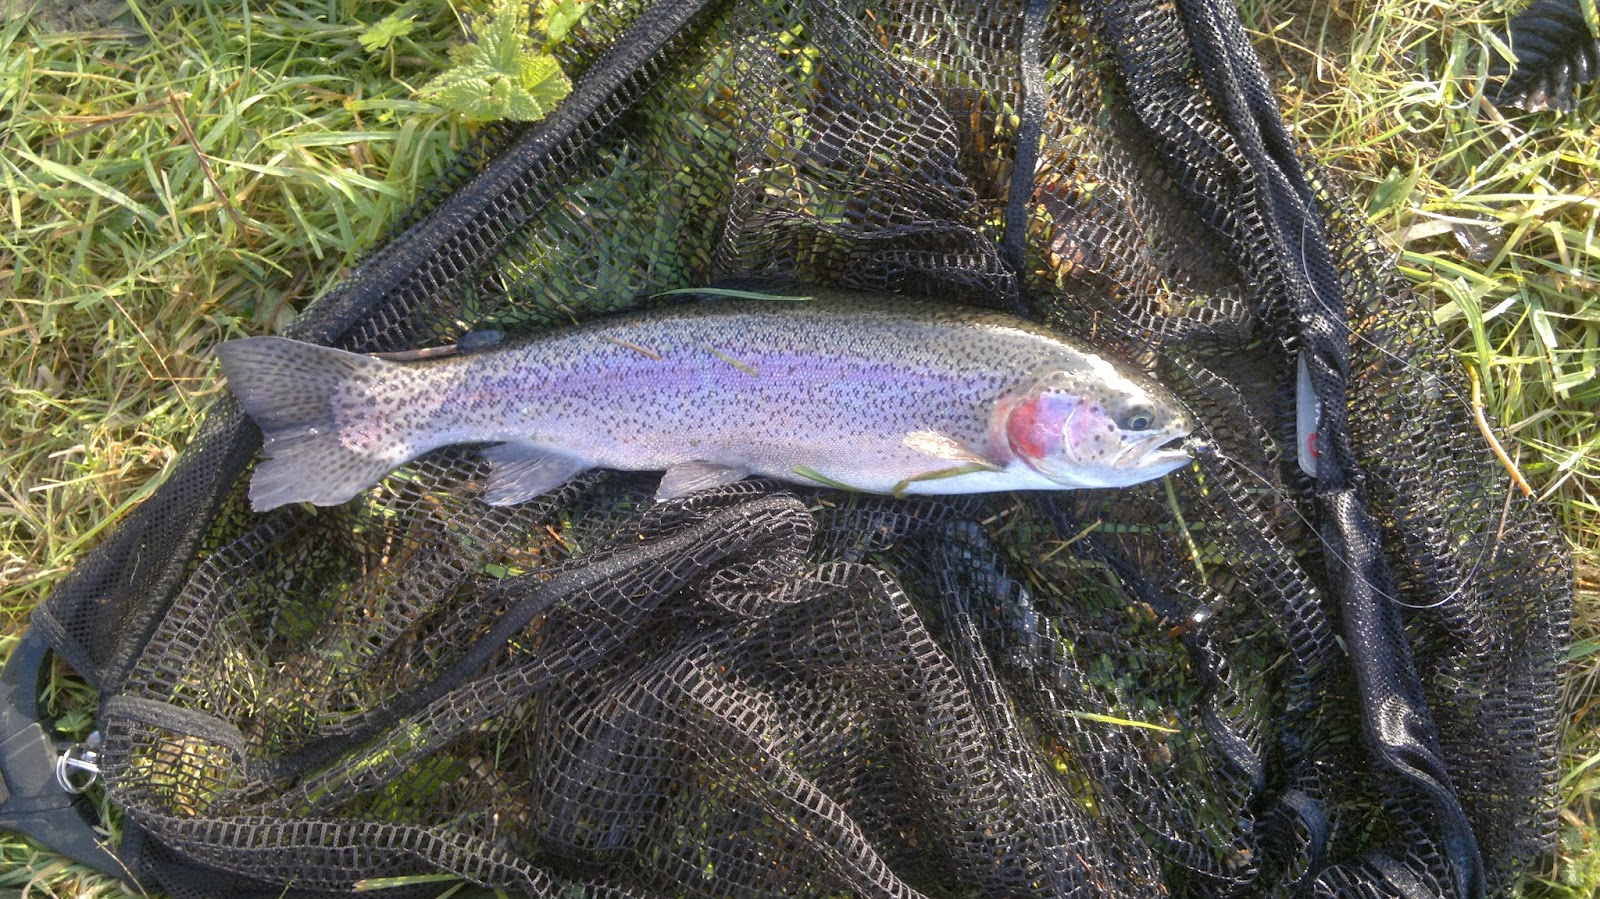 Go fishing with cadbury angling trout fishing to beat for Winter trout fishing